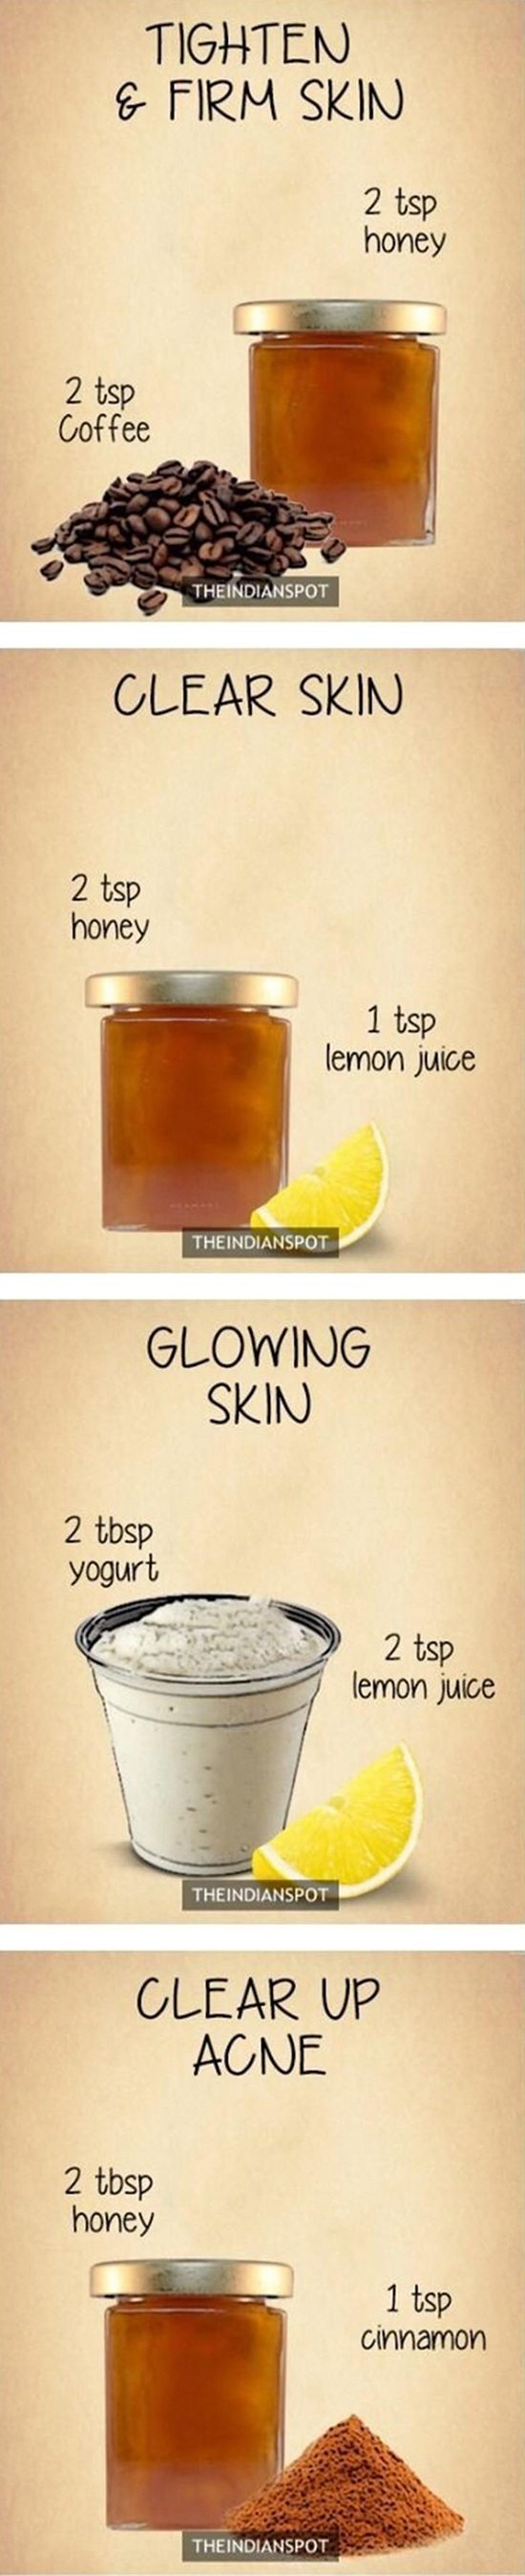 How to get clear glowing skin overnight?